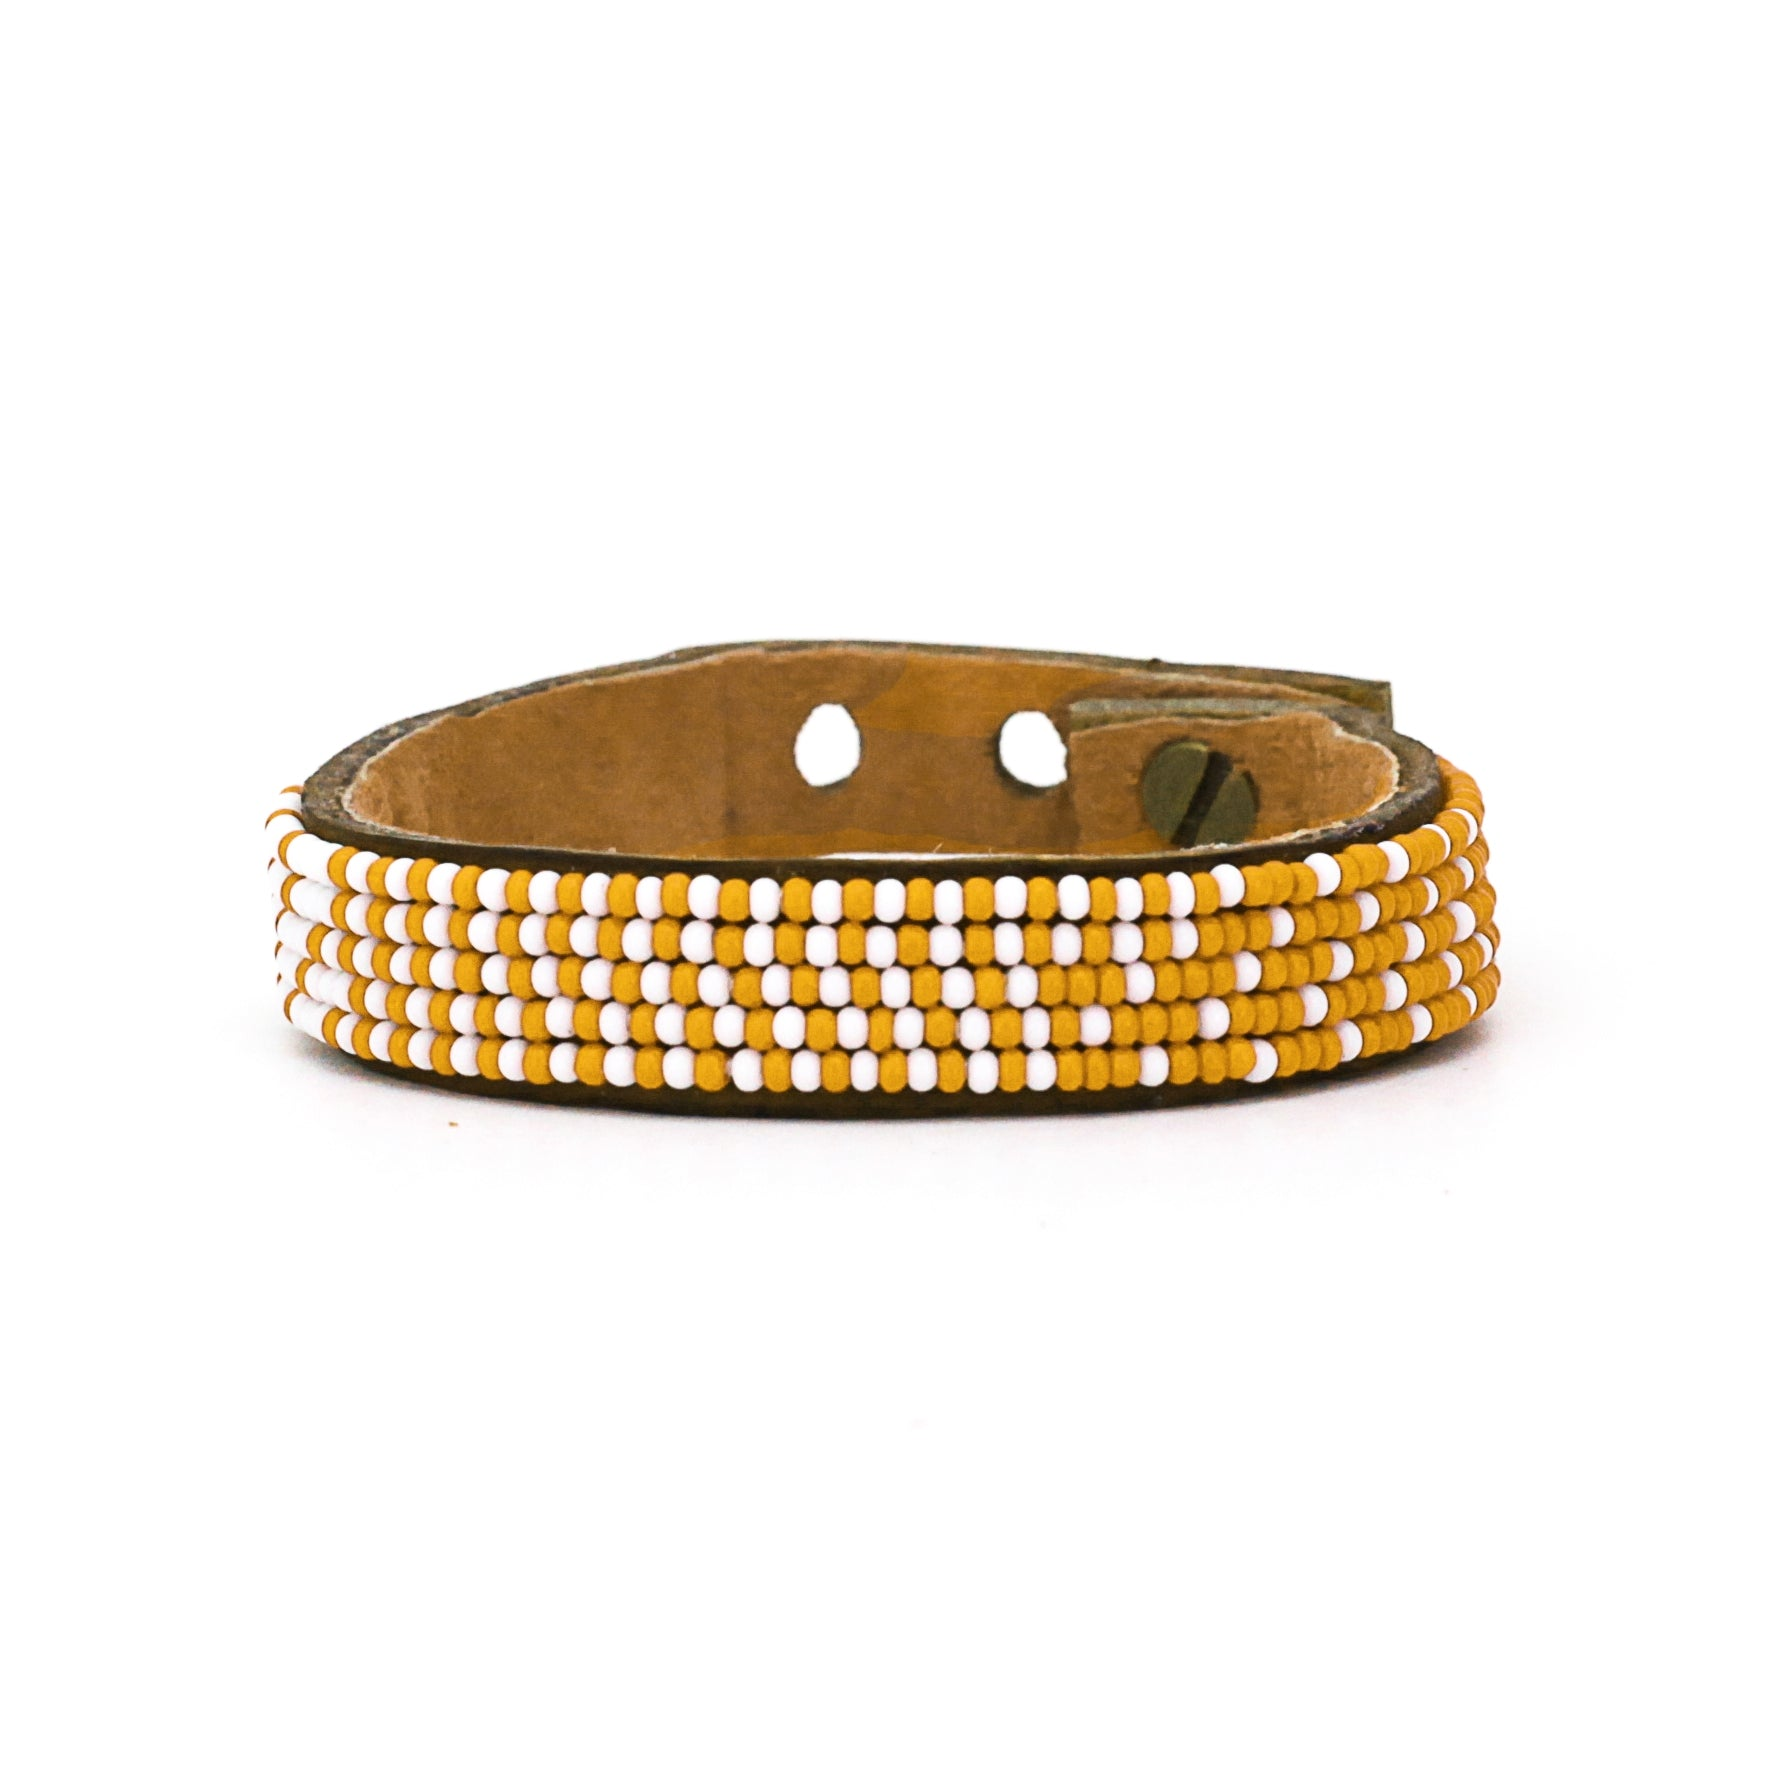 Beaded Leather Cuff - Orange and White Ombre